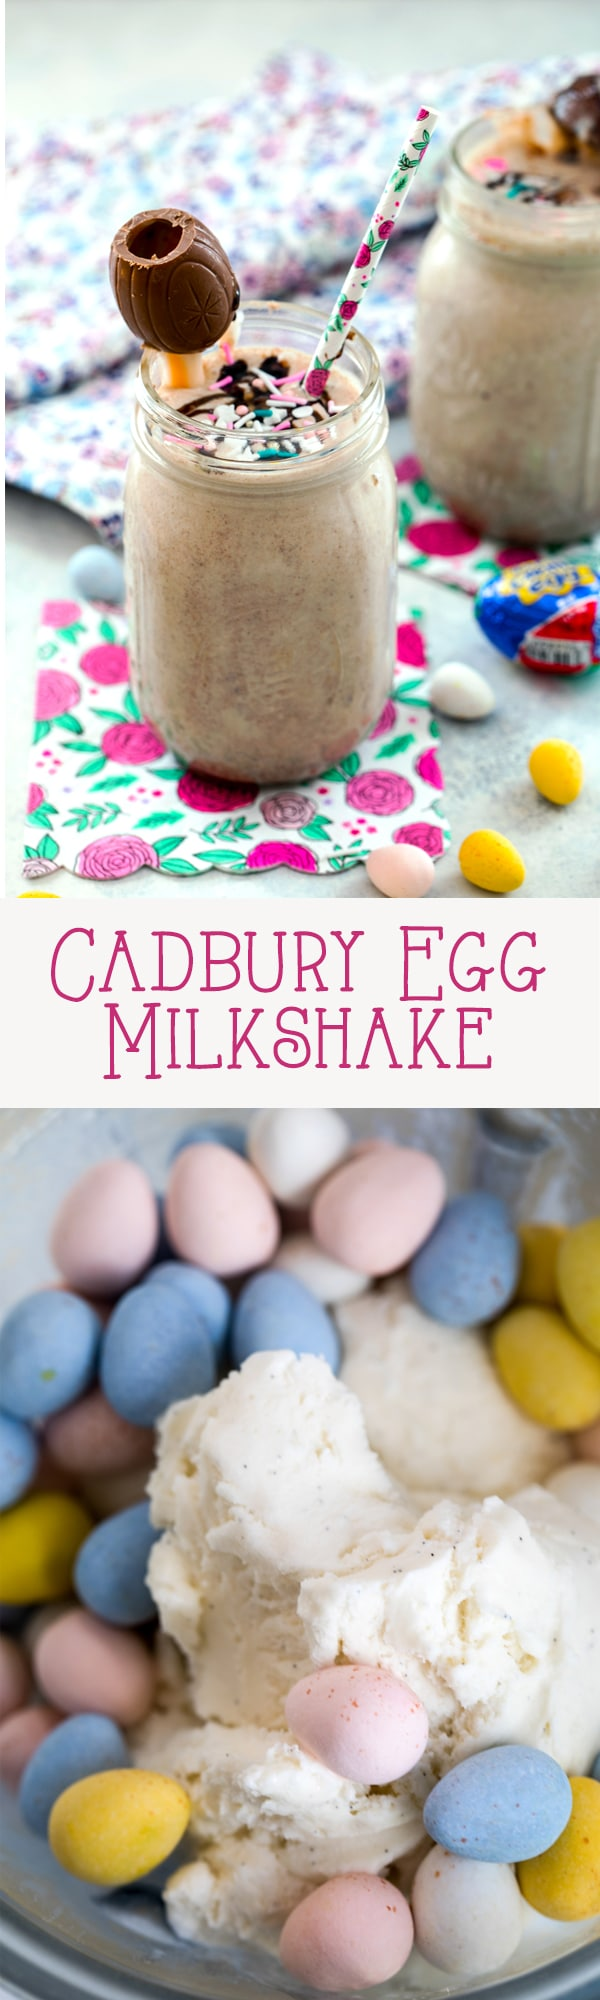 Cadbury Egg Milkshake -- The ultimate Easter milkshake, this Cadbury Egg Milkshake combines ice cream with Cadbury Mini Eggs, caramel, and chocolate sauce and is topped with a Cadbury Creme Egg garnish | wearenotmartha.com